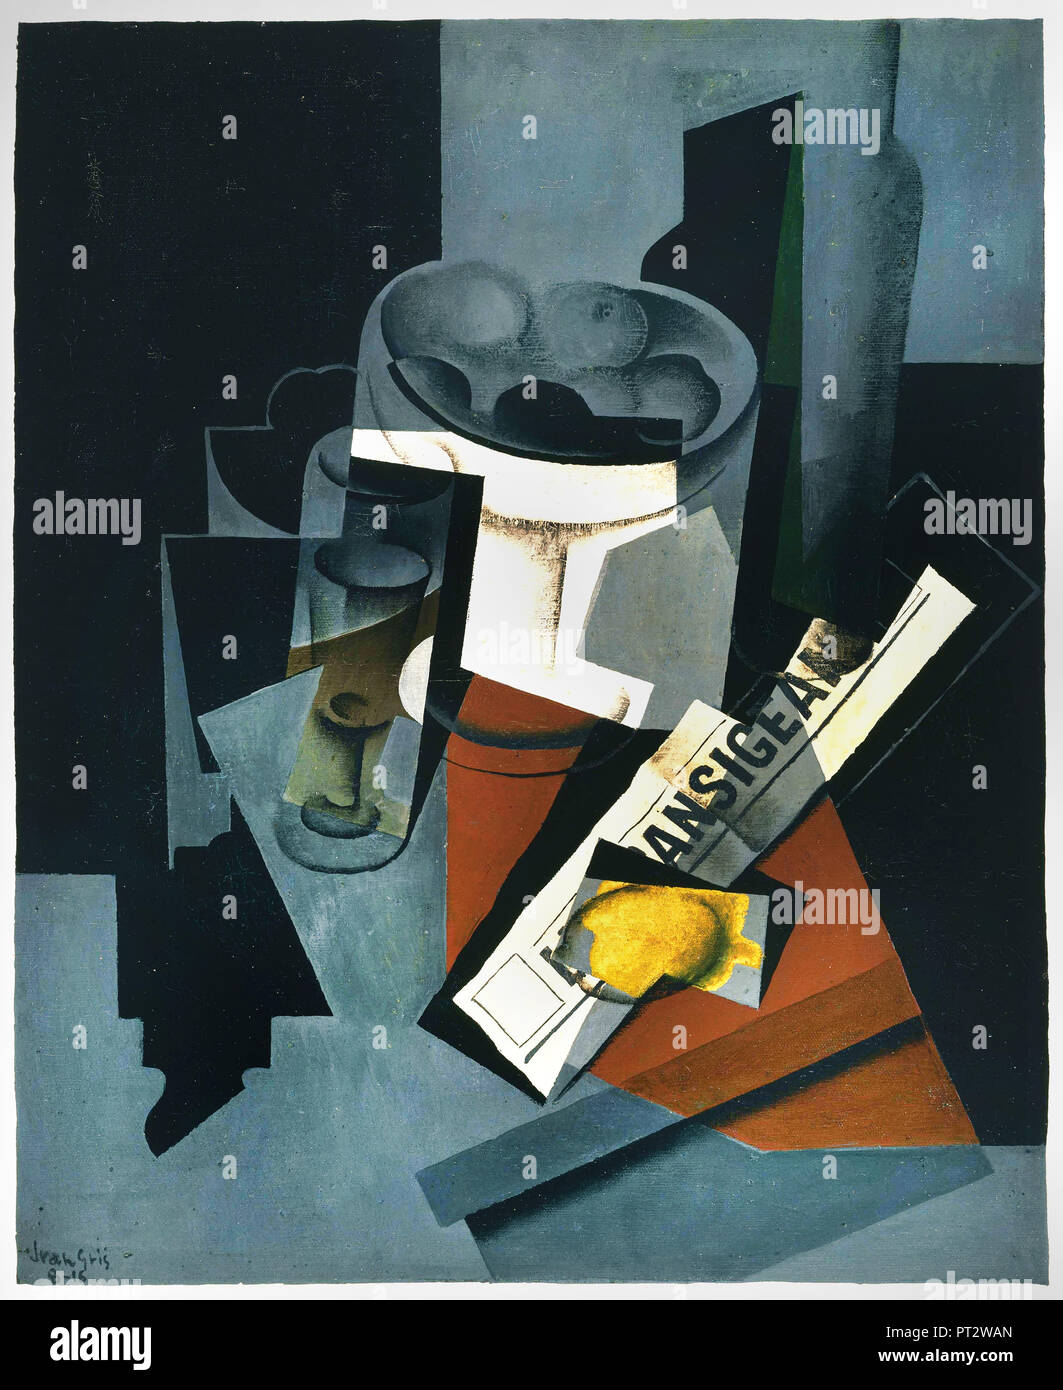 Juan Gris, Still Life with Newspaper 1916 Oil on canvas, Phillips Collection, Washington, D.C., USA. - Stock Image